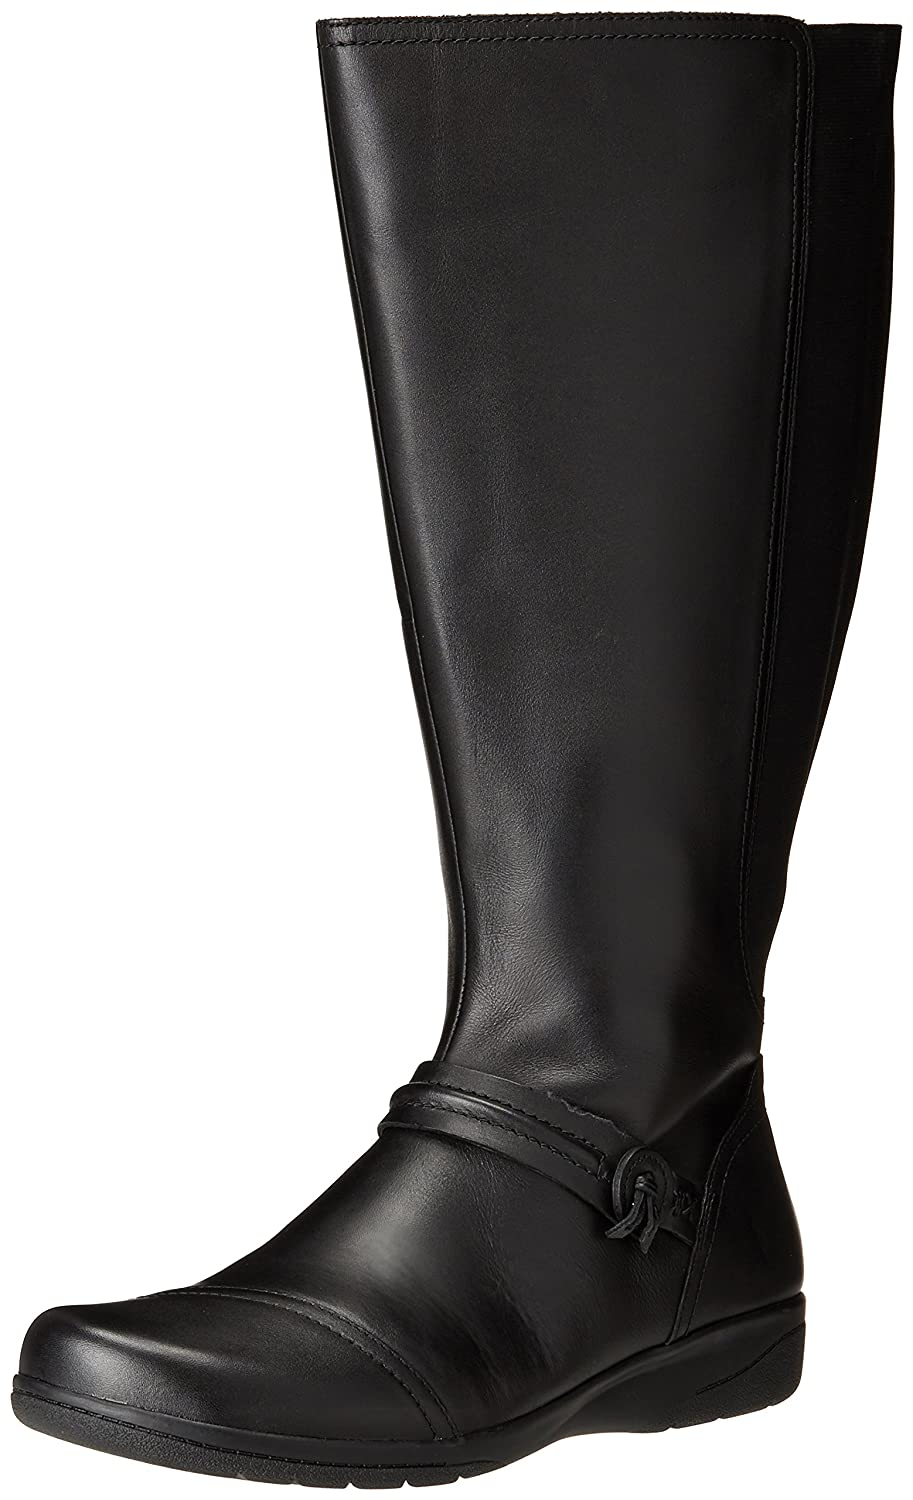 CLARKS Women's Cheyn Whisk Wide Calf Knee High US|Black Boot B01MU8LMJG 10 W US|Black High fb924a